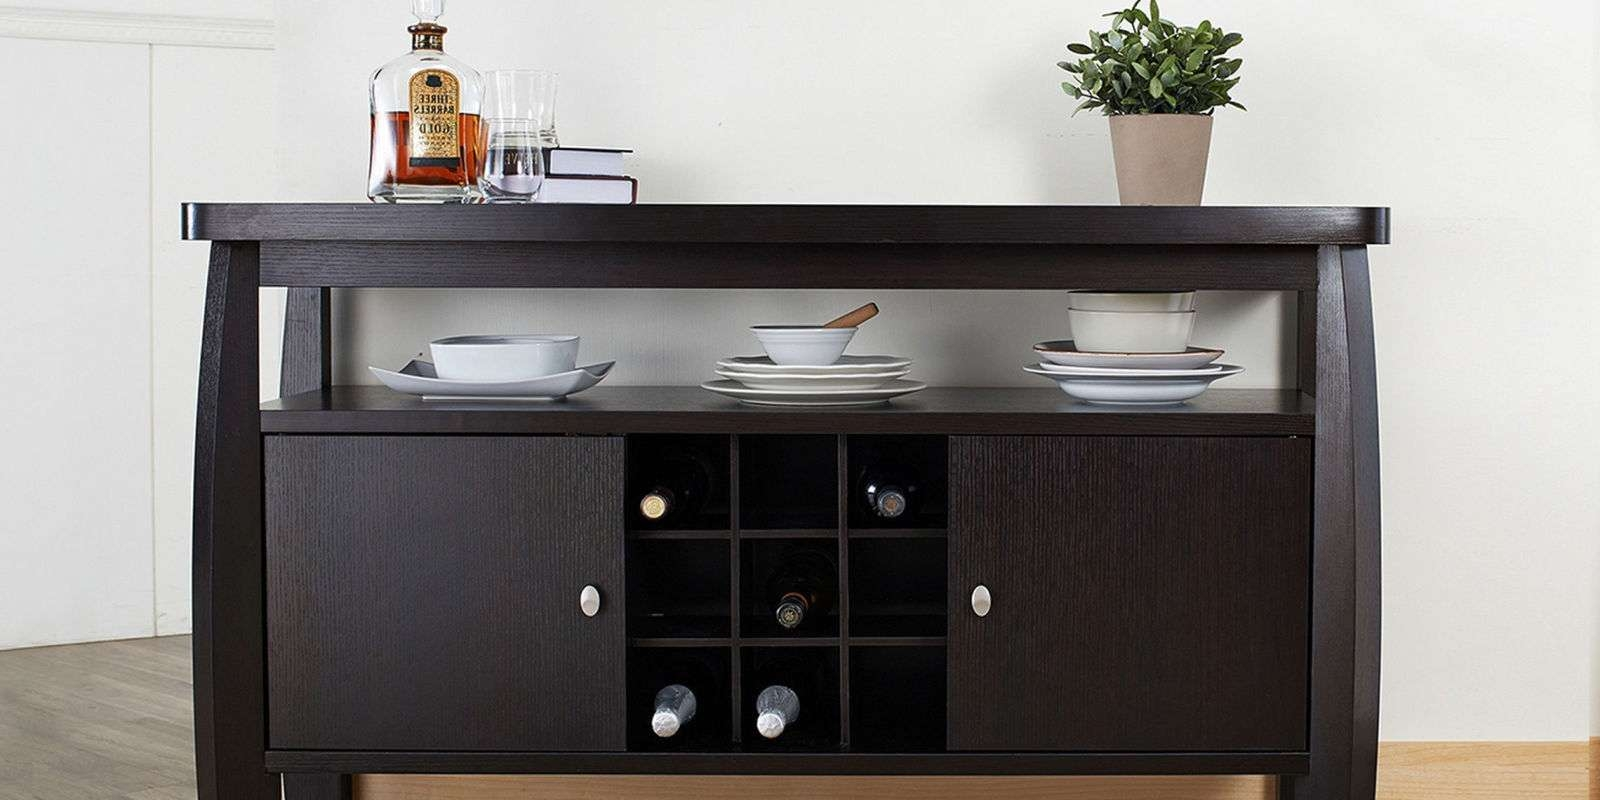 11 Best Sideboards And Buffets In 2018 – Reviews Of Sideboards Within Dining Sideboards (Gallery 5 of 20)